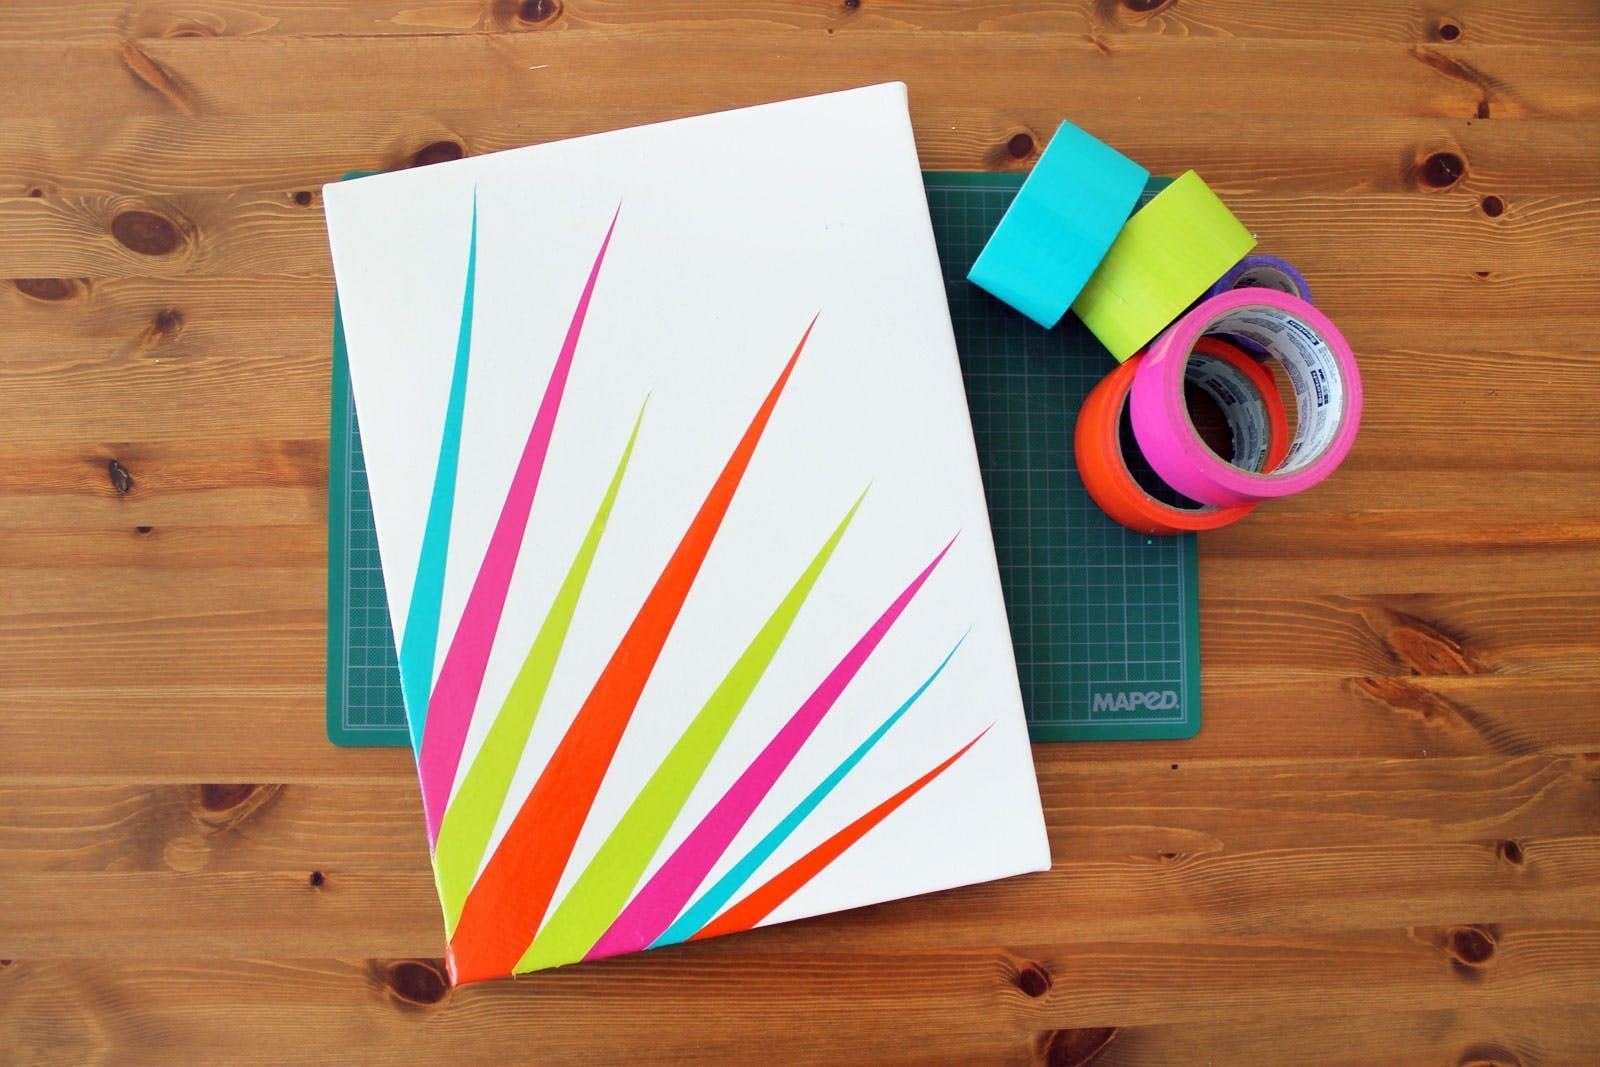 Diy Duct Tape Canvas Art In 90 Seconds | Brit + Co Inside Duct Tape Wall Art (Photo 10 of 20)